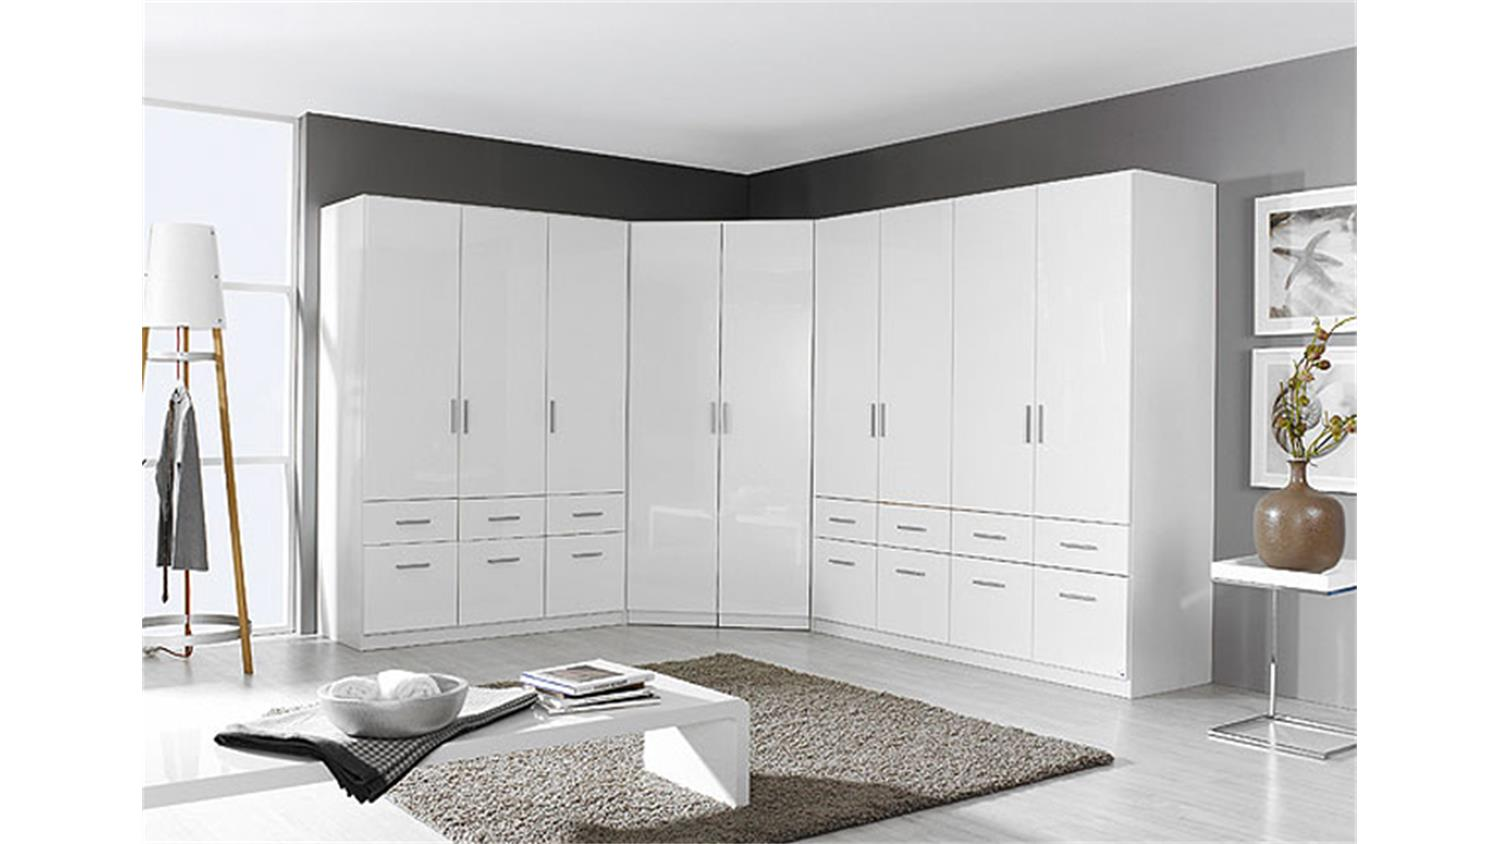 schrankkombi celle kleiderschrank schrank in wei hochglanz. Black Bedroom Furniture Sets. Home Design Ideas